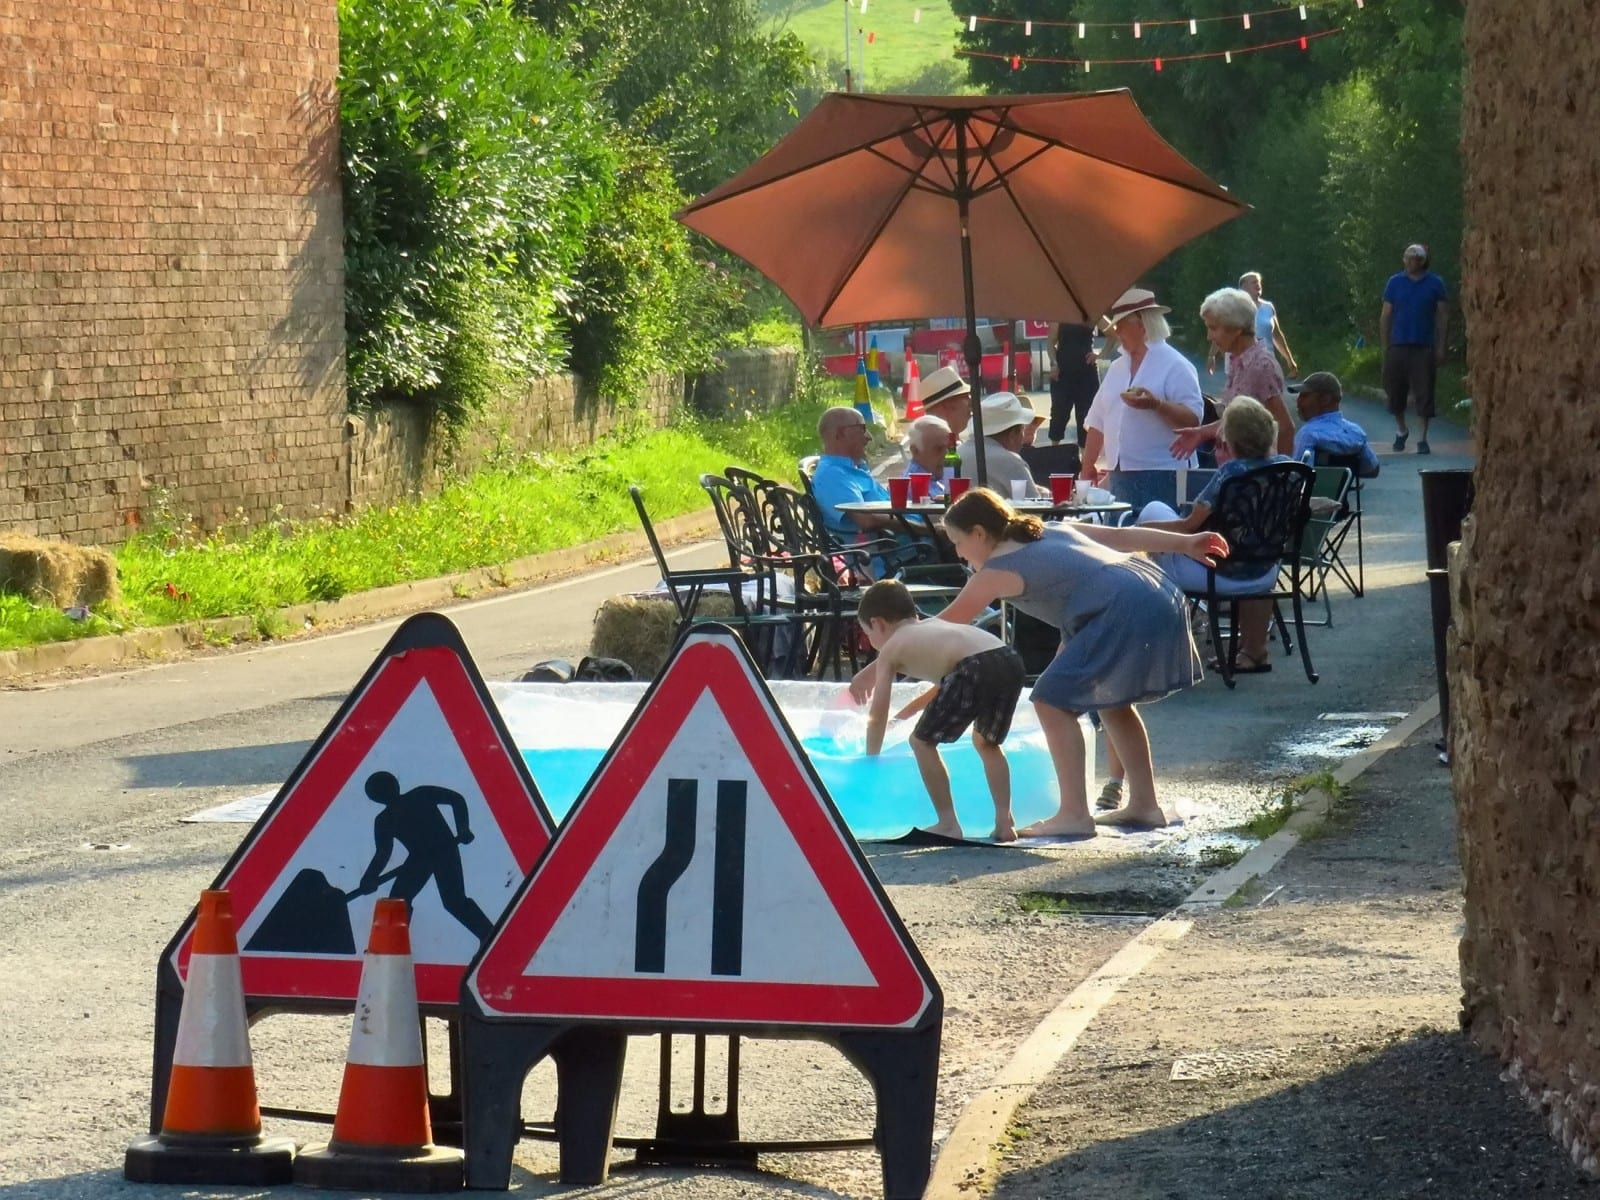 Villagers Driven Round The Bend By 26-mile Diversion After 50m Road Closed Cheer Themselves Up With Street Party On Shut Highway